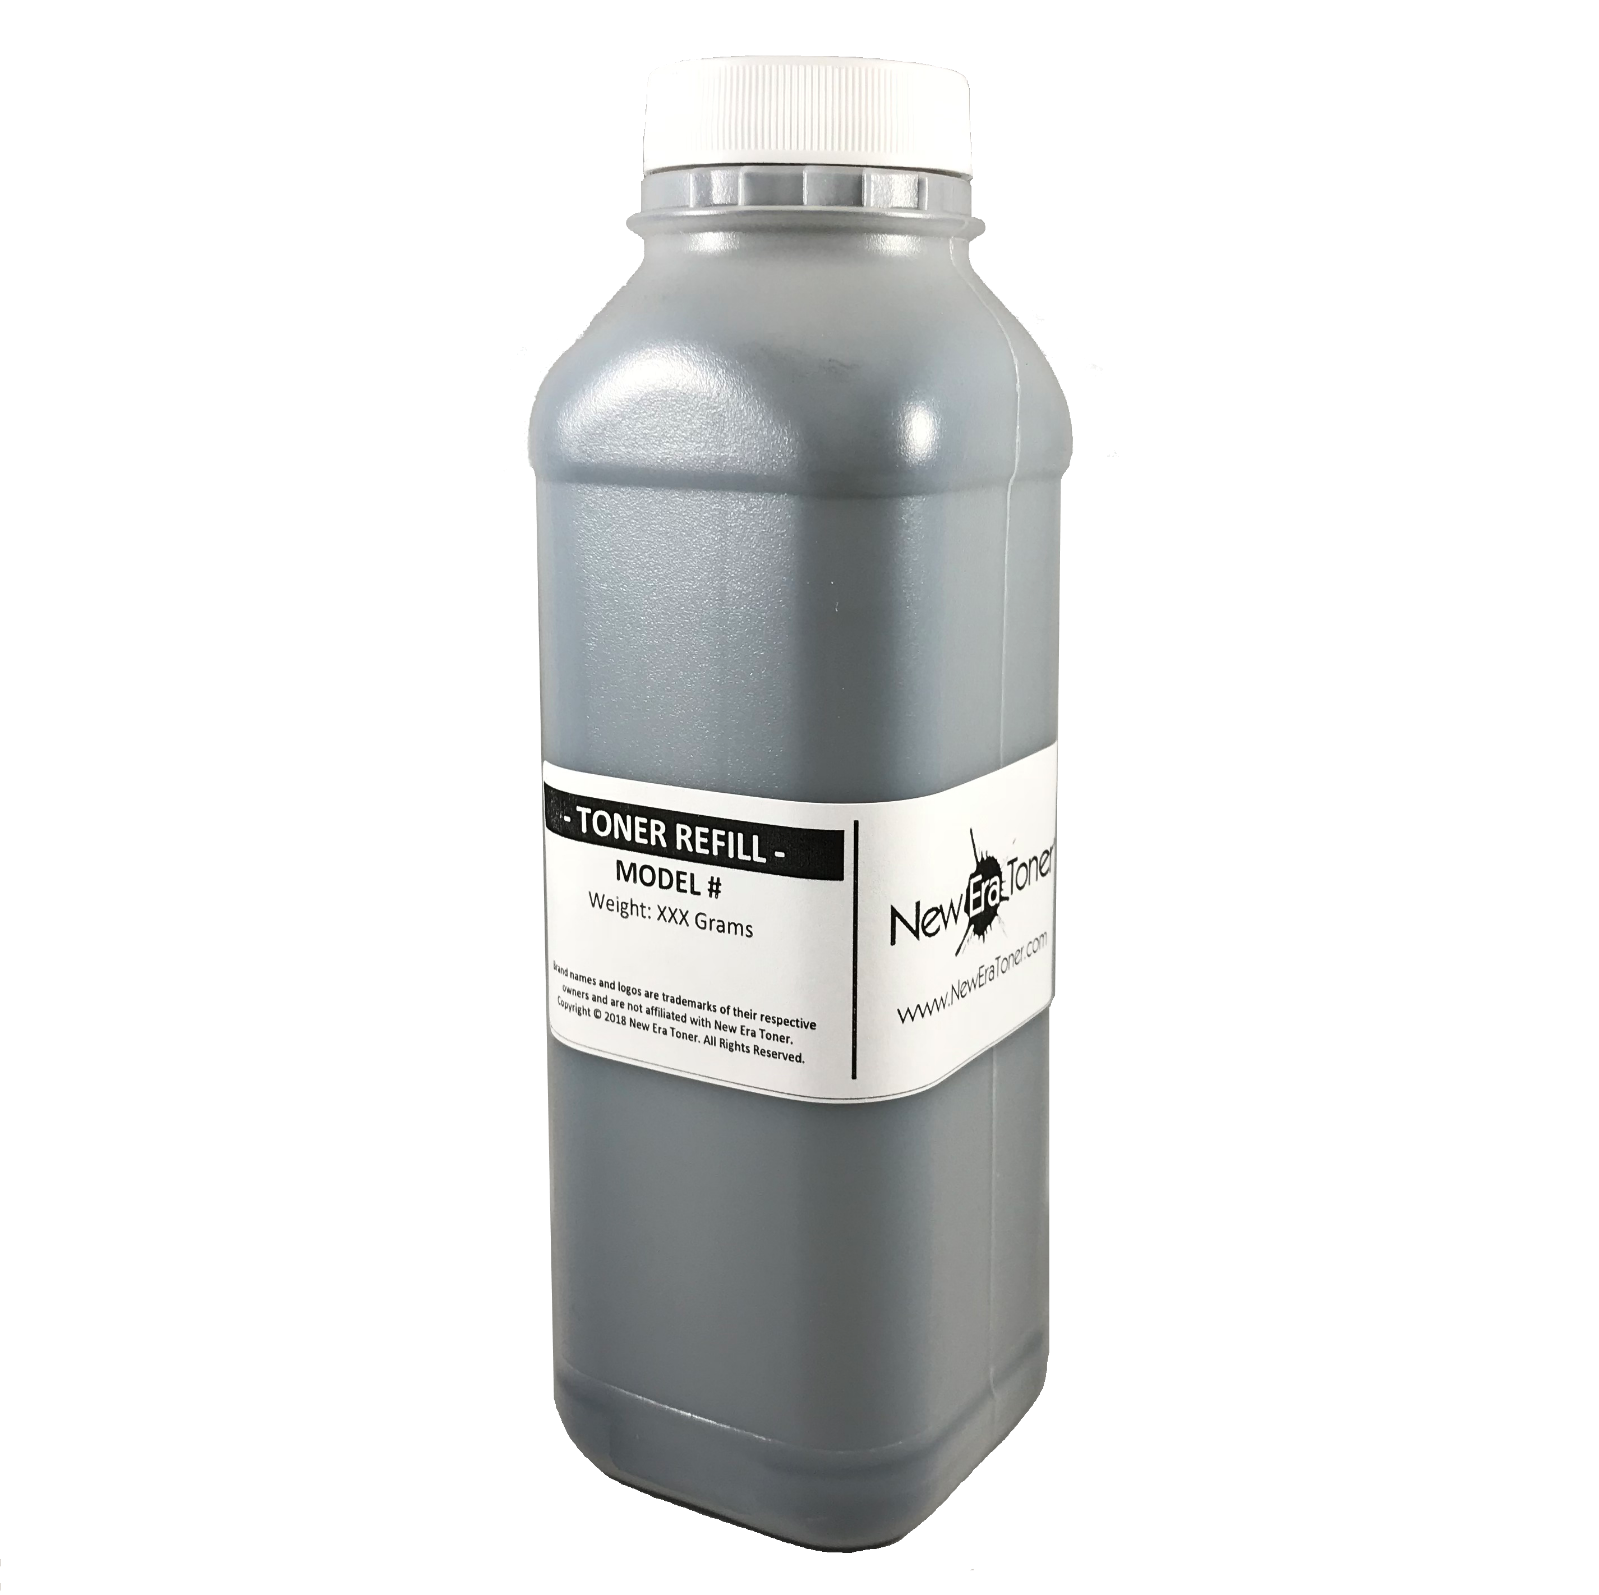 Lower Cost Alternative to Brother Search4Toner Compatible Replacement for Brother TN550 TN580 Replaces Brother TN-550 TN-580 Overall Defect Rates Less Than 1/%